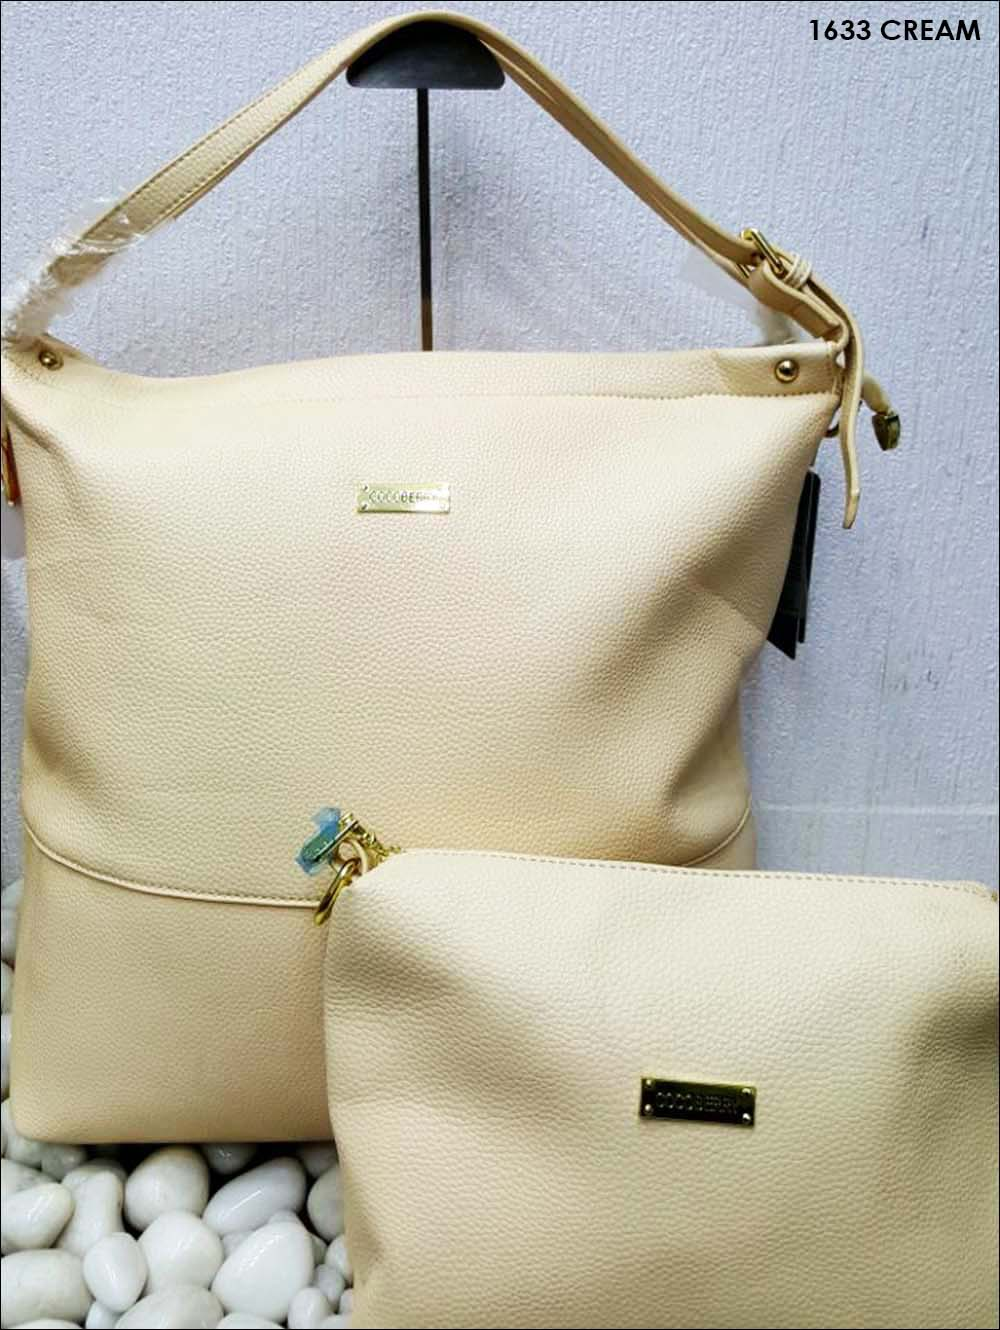 Cream Stylish Combo Women Handbag